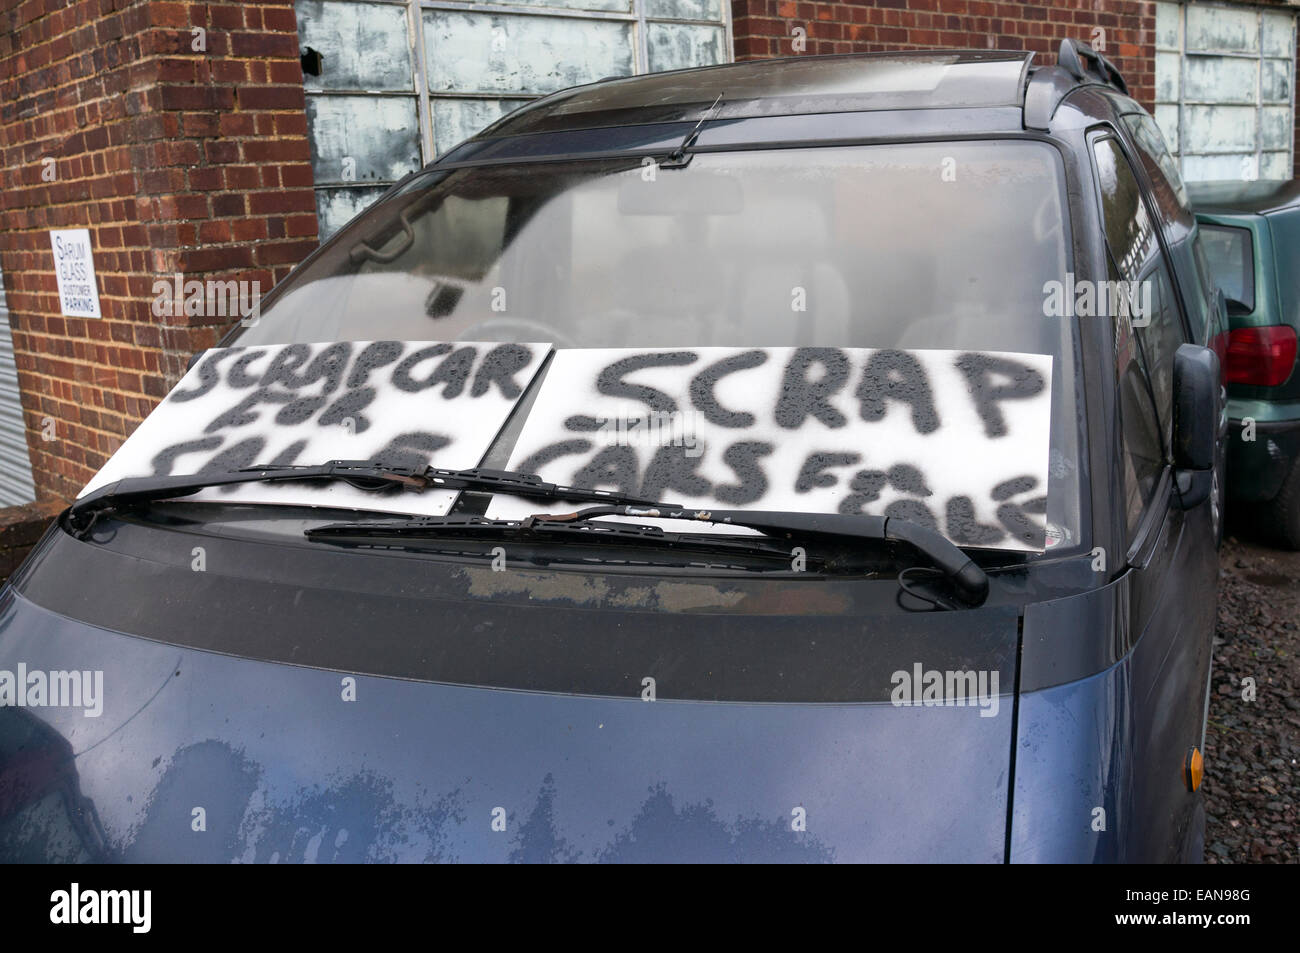 Scrap cars for sale sign on the windscreen of car Photo – Free for Sale Signs for Cars